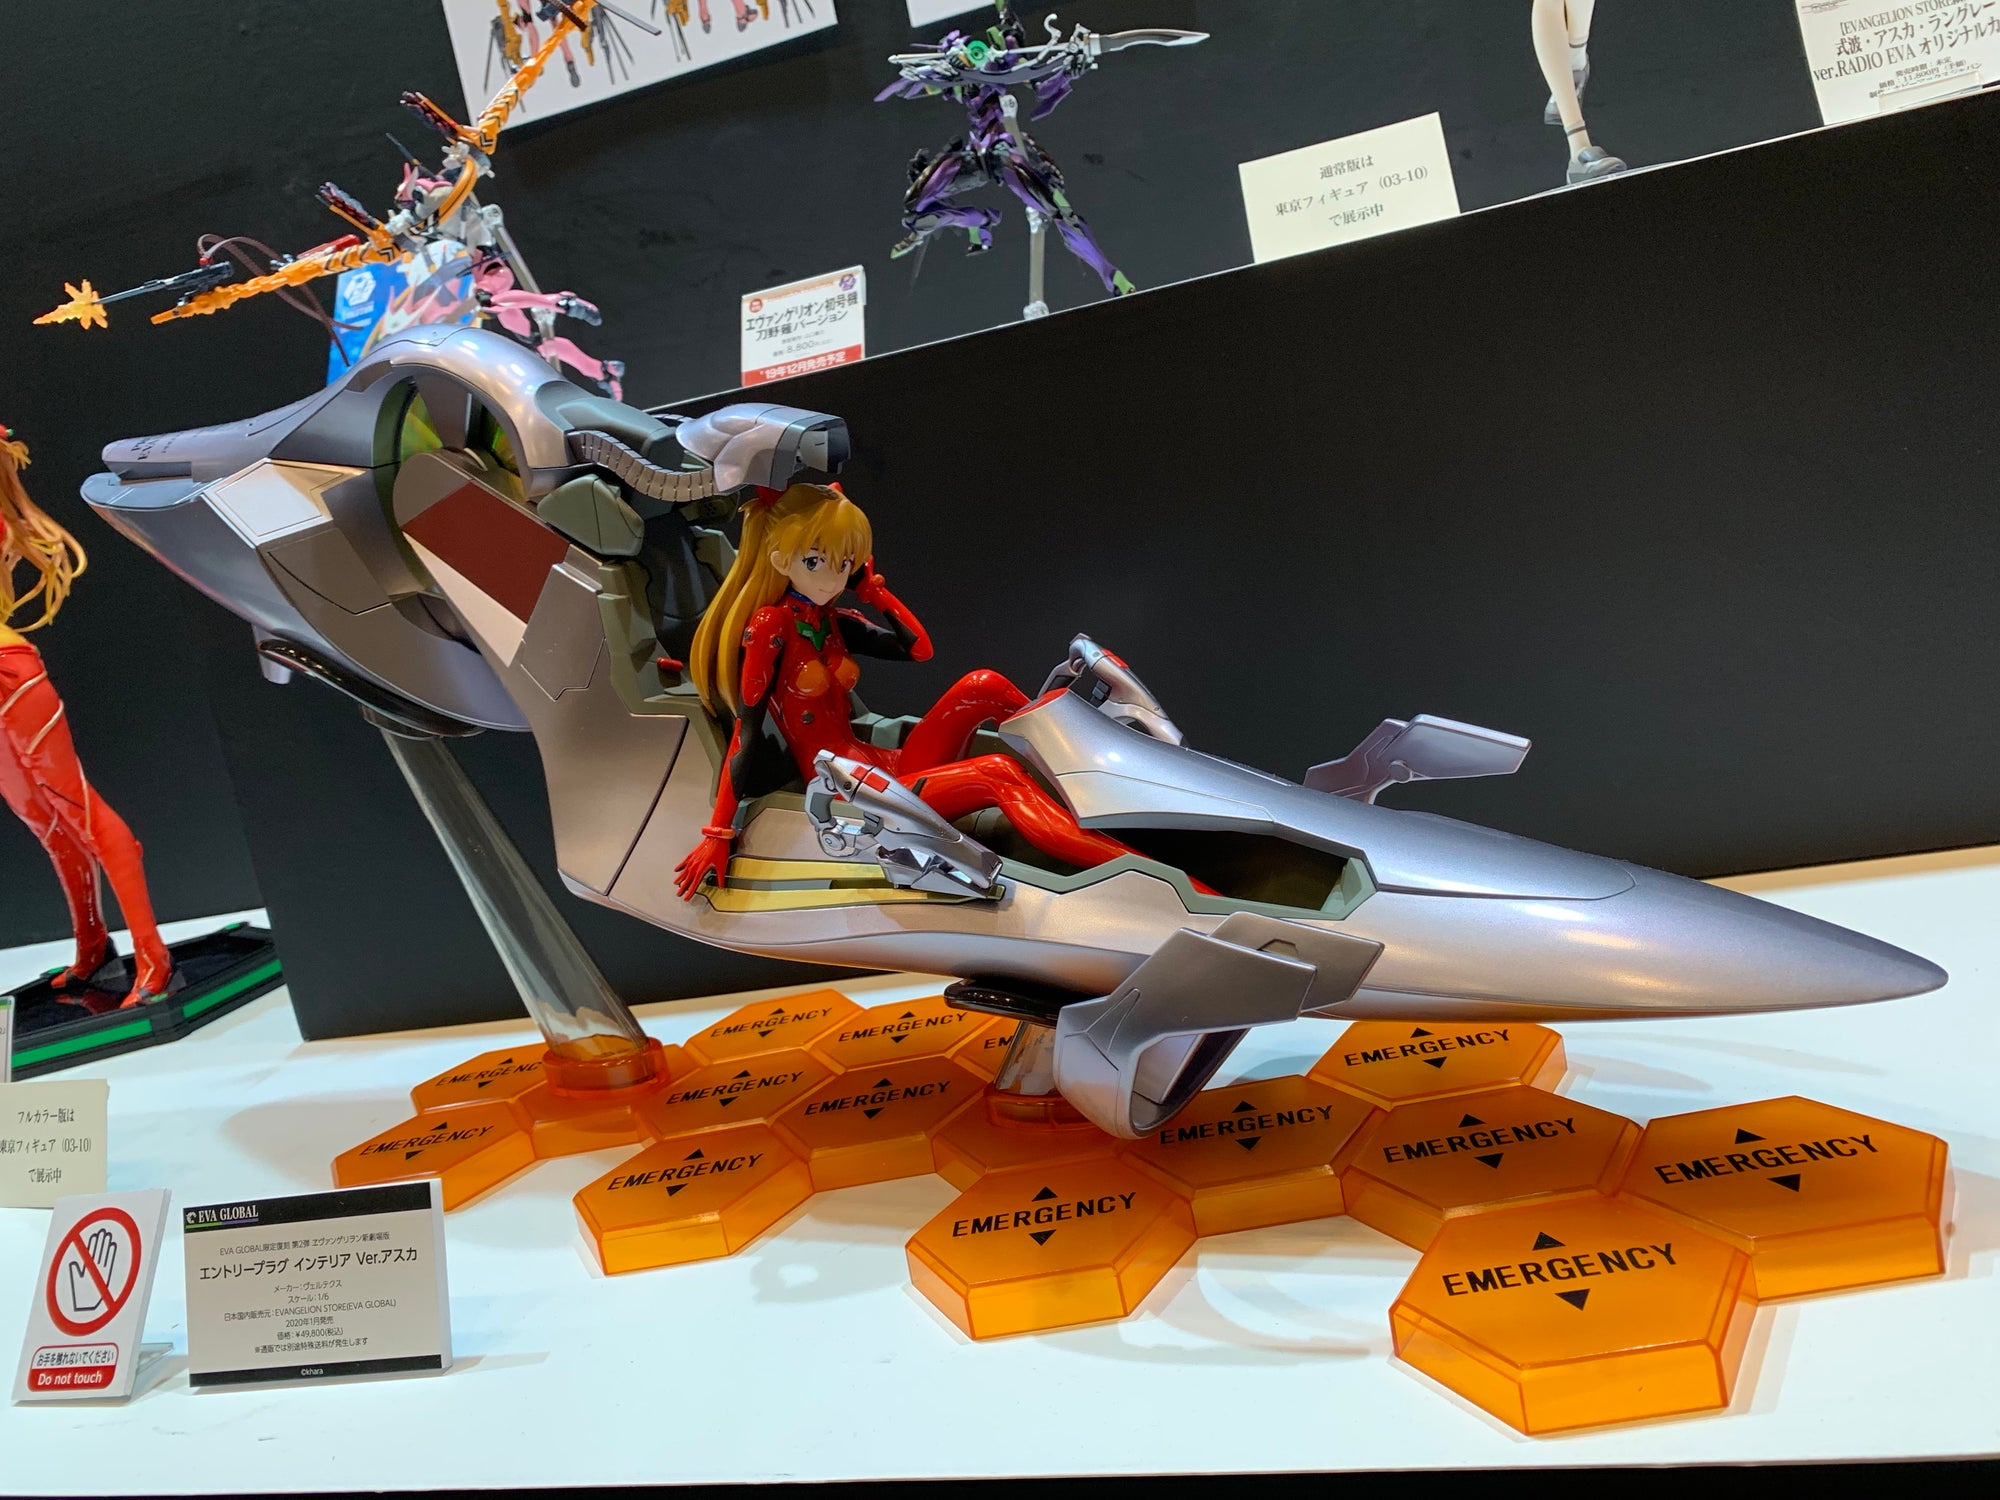 A Quick Look at the Wonderful Models of Wonder Fest